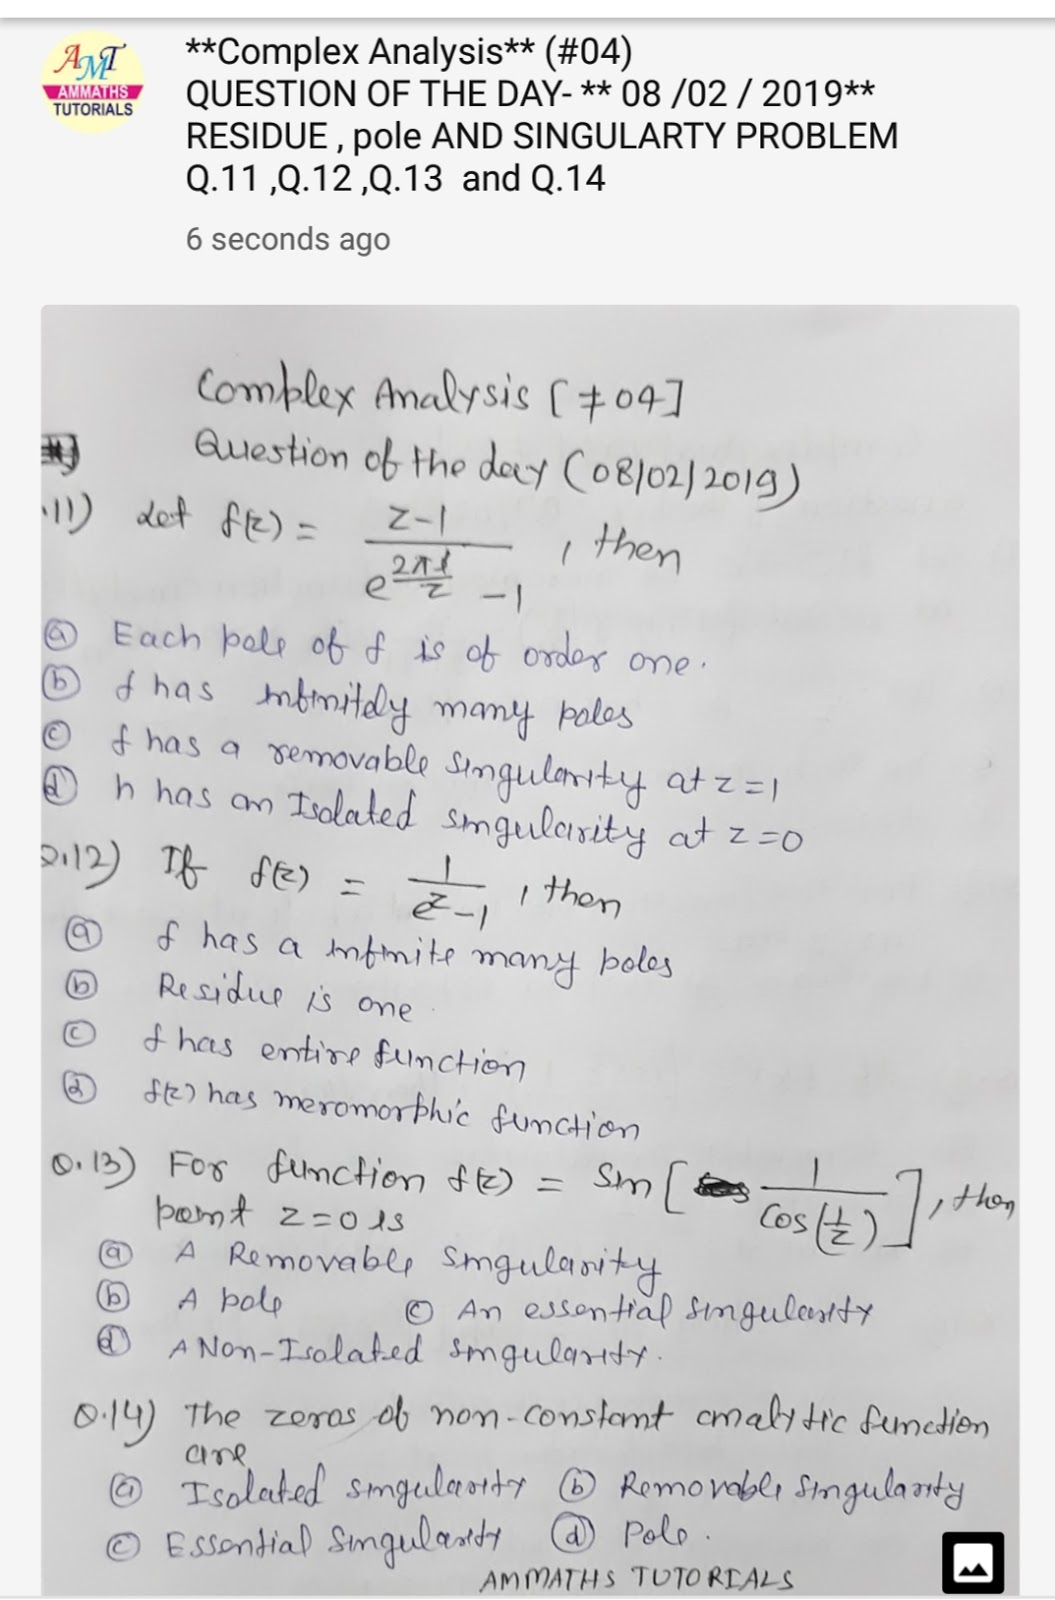 AMMATHS TUTORIALS : #04 Complex Analysis- QUESTION OF THE